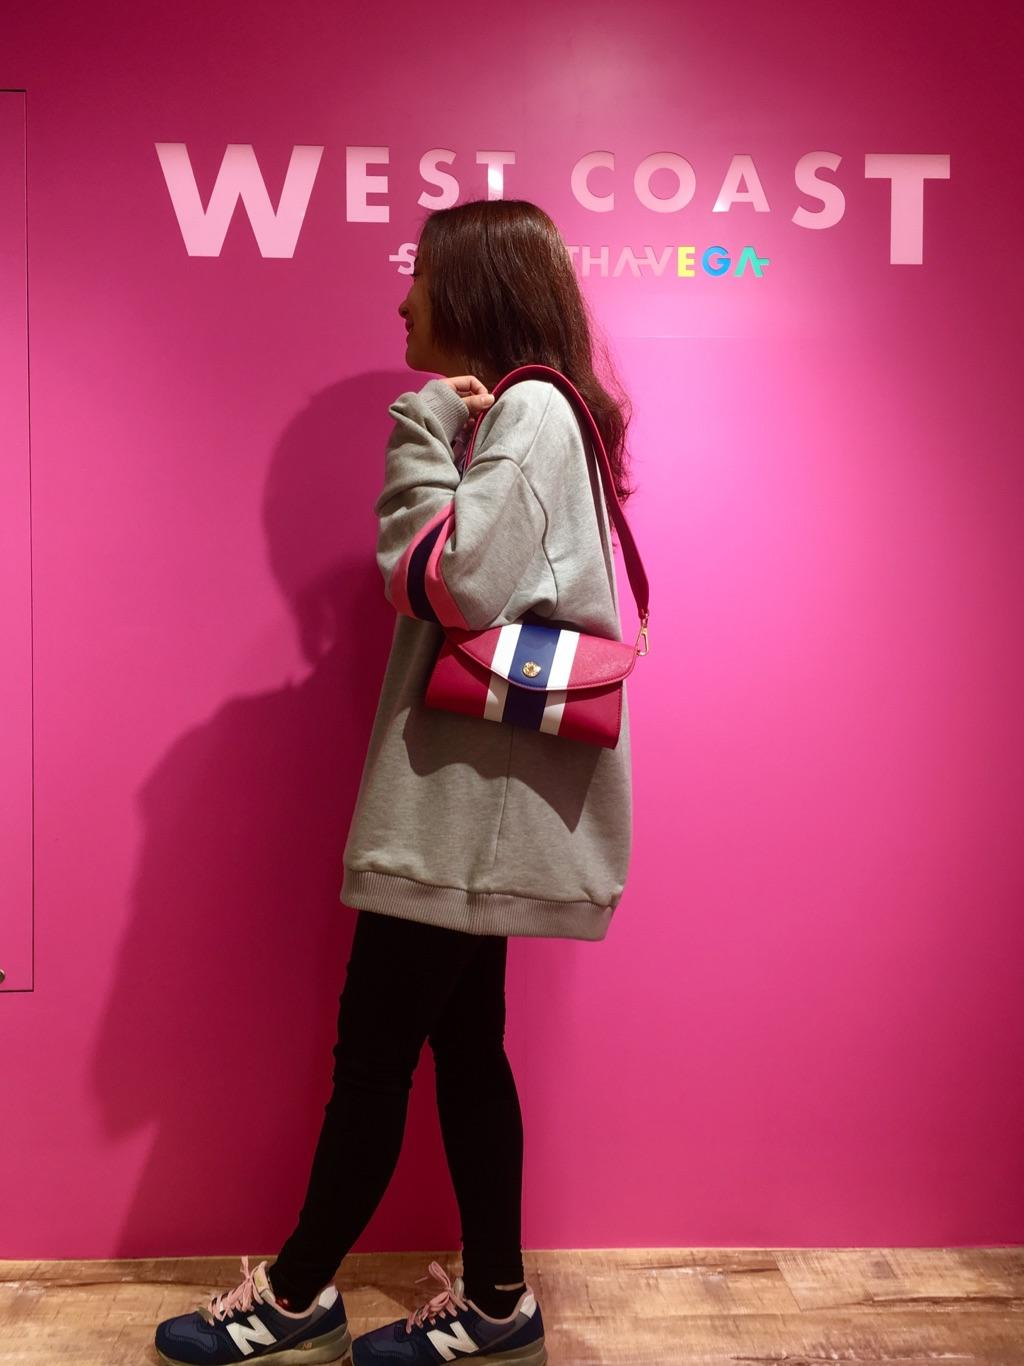 WEST COAST SAMANTHAVEGA LUMINE EST店 Miyu